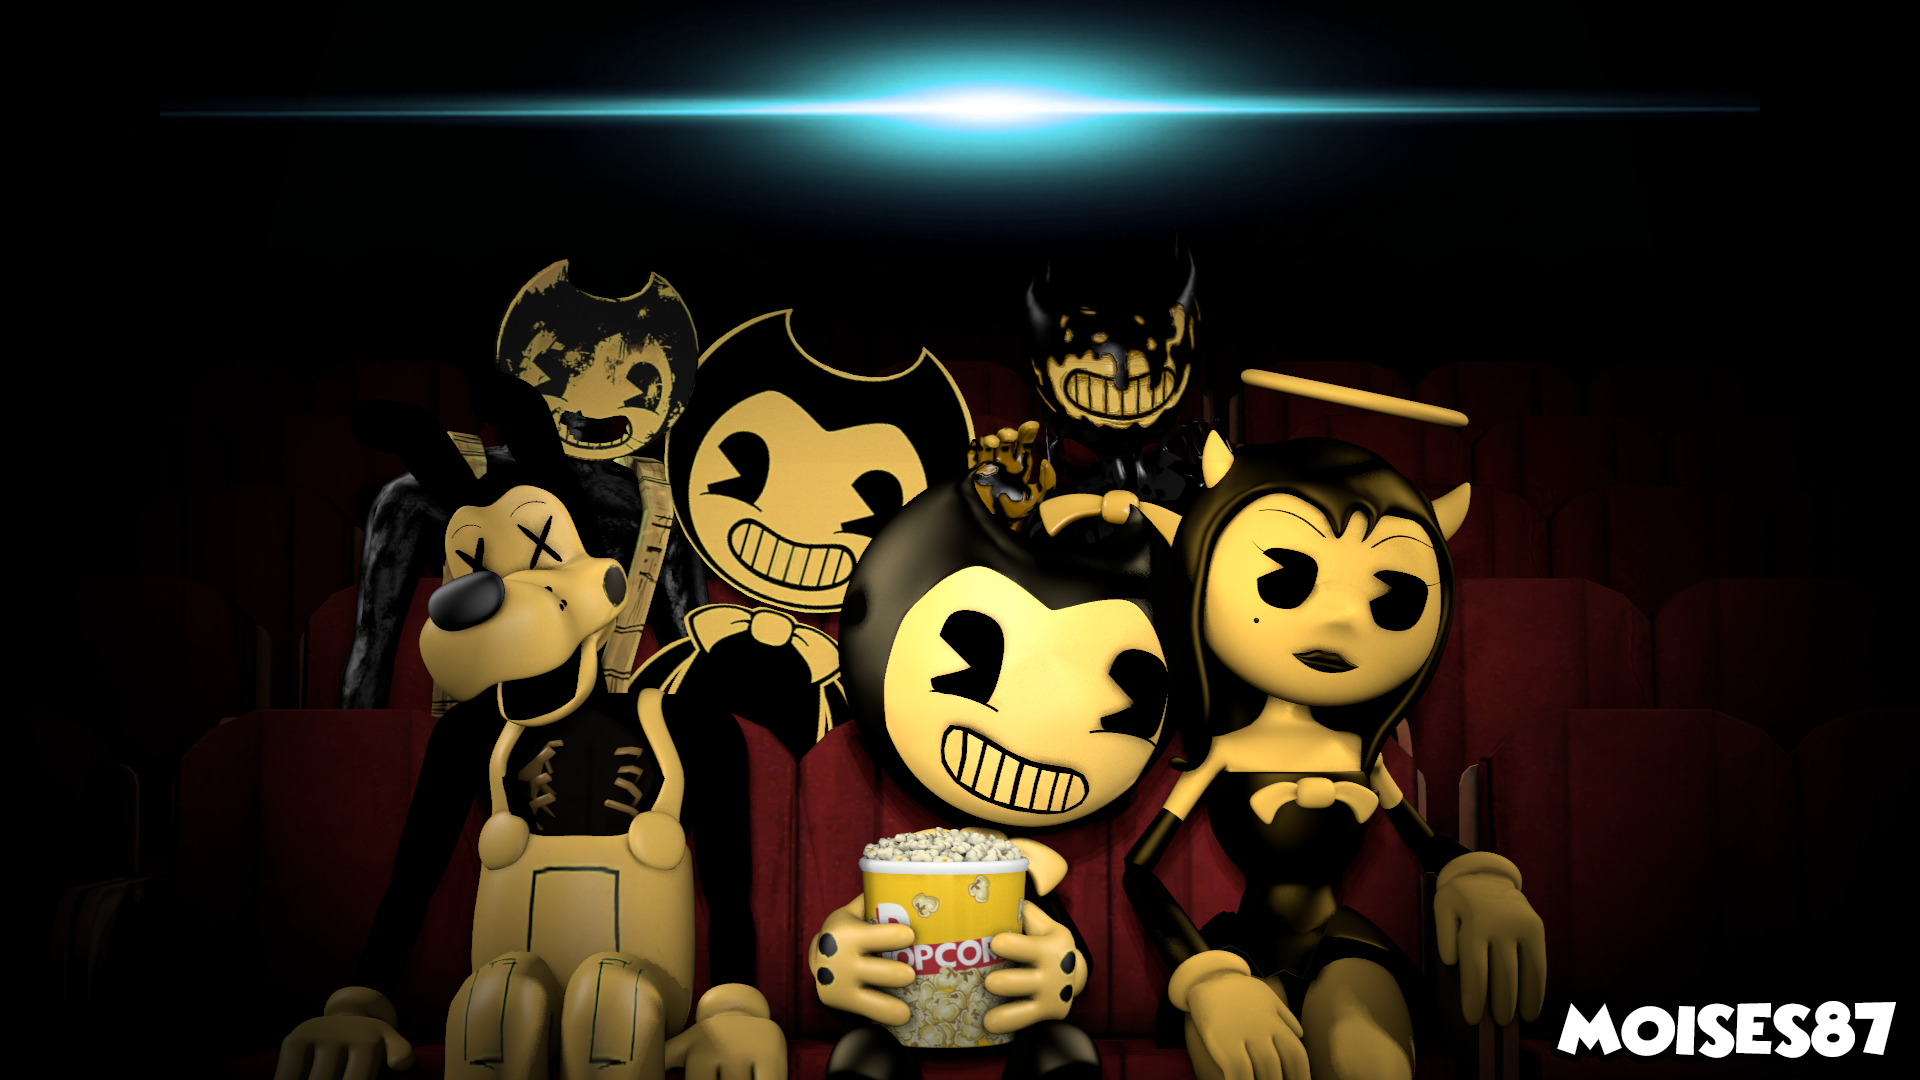 bendy-and-the-ink-machine-sfm-by-moises-dbb3dh-1920%C3%971080-wallpaper-wp3603182